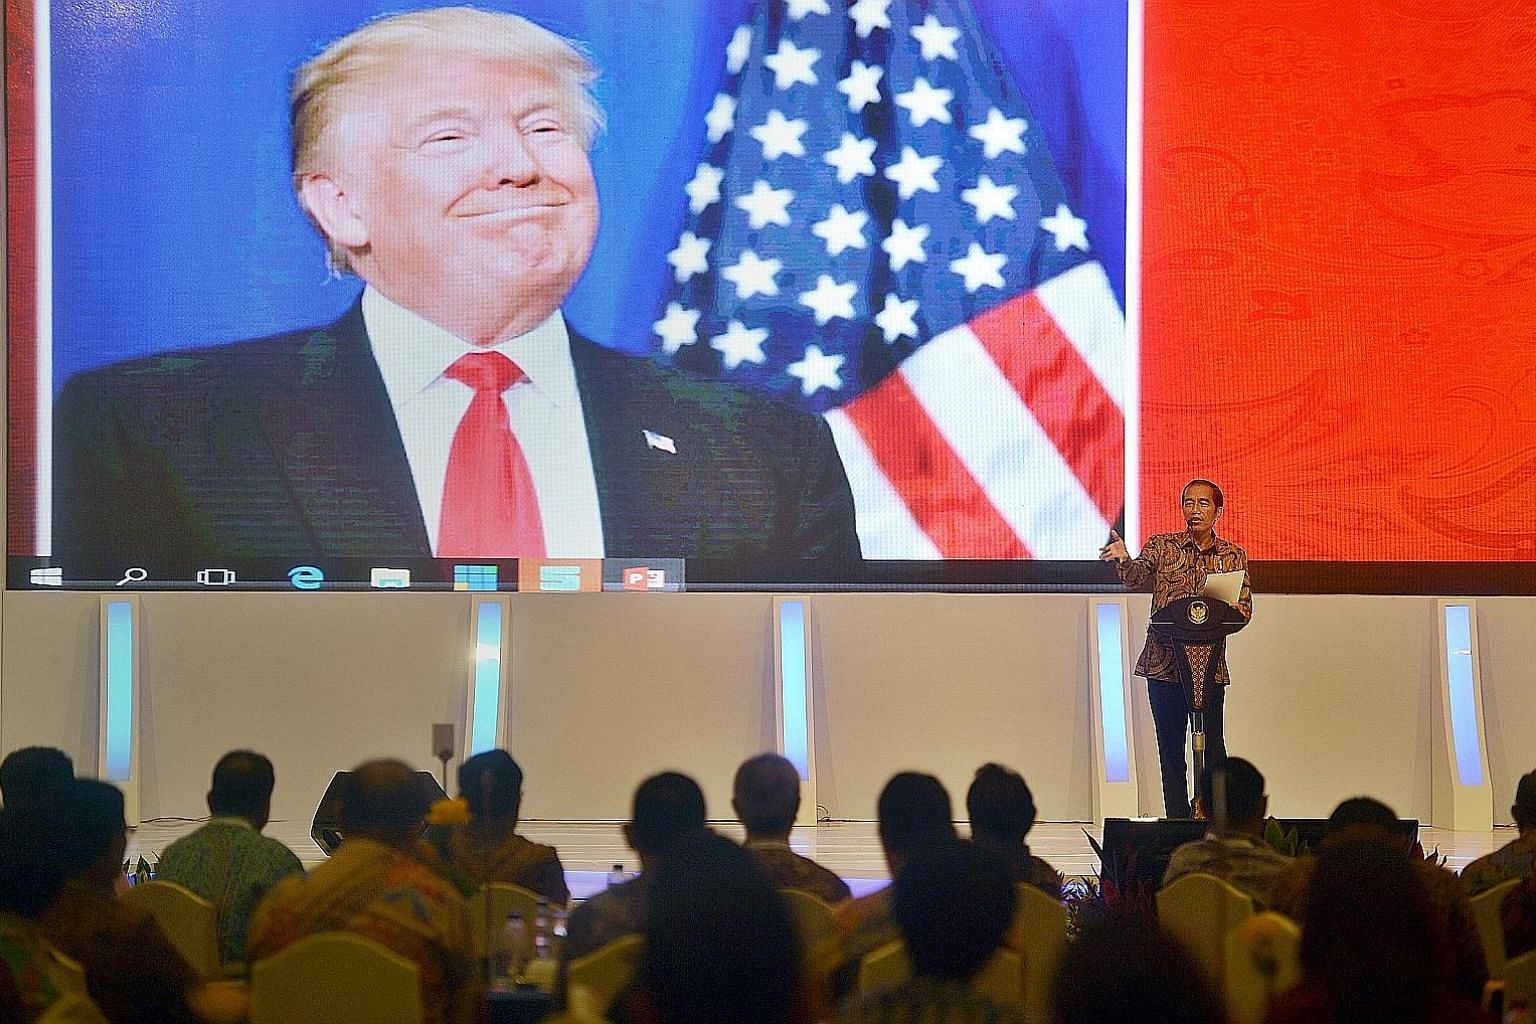 Indonesian President Joko speaking to local company executives as a picture of Mr Trump is shown on the screen behind him at the Kompas CEO forum in Jakarta last November. According to the writer, Mr Joko, like the incoming US president, is a product